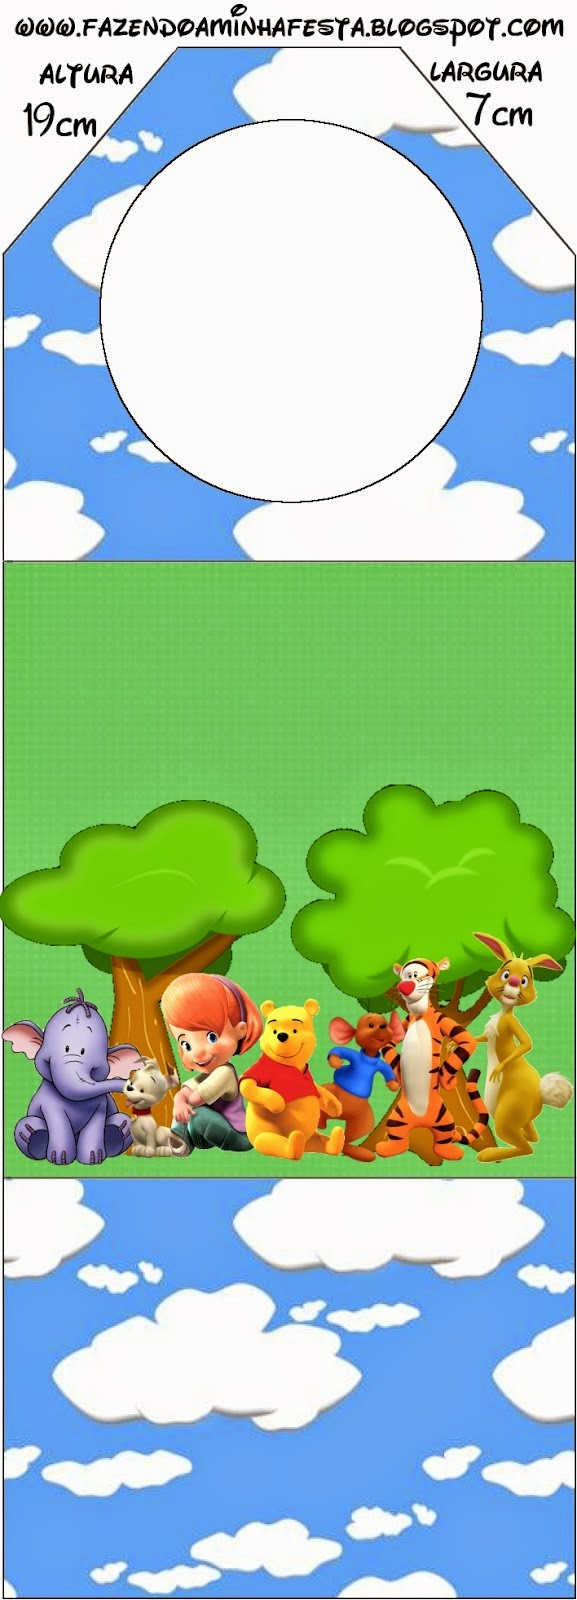 Free Printable Book Marks of Winnie the Pooh.